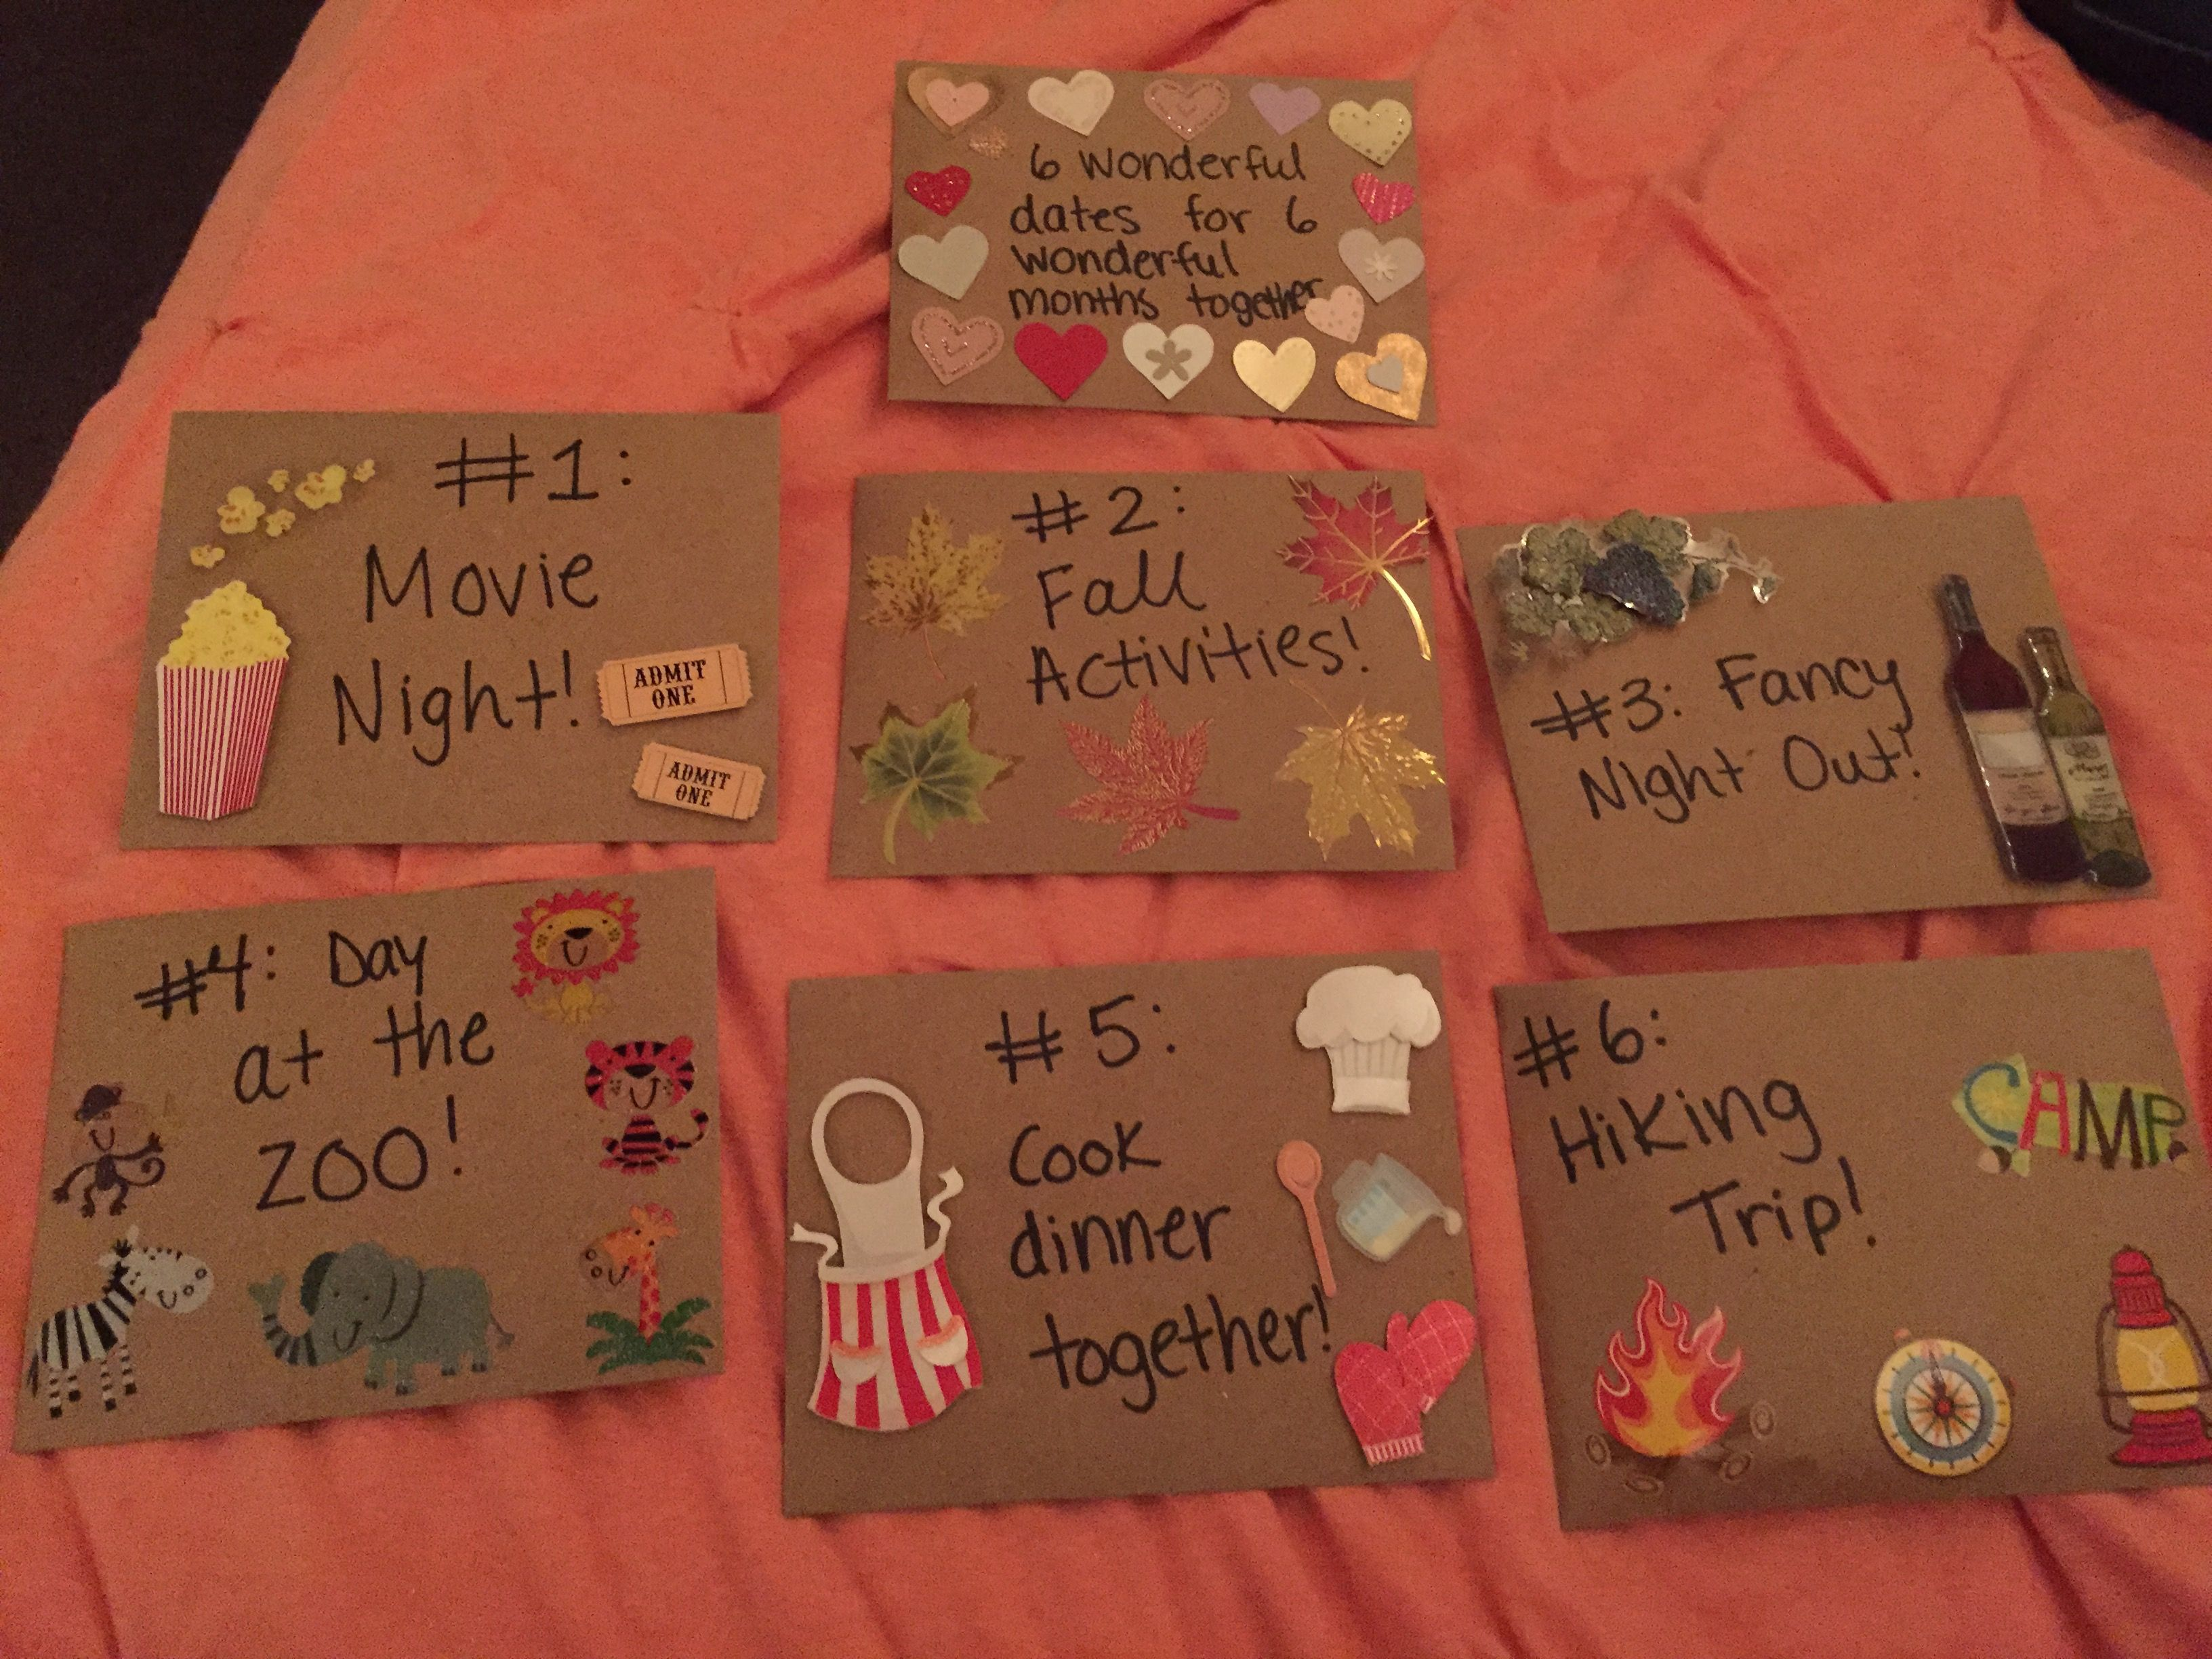 6 Month Anniversary Gift For My Boyfriend- 6 Dates For 6